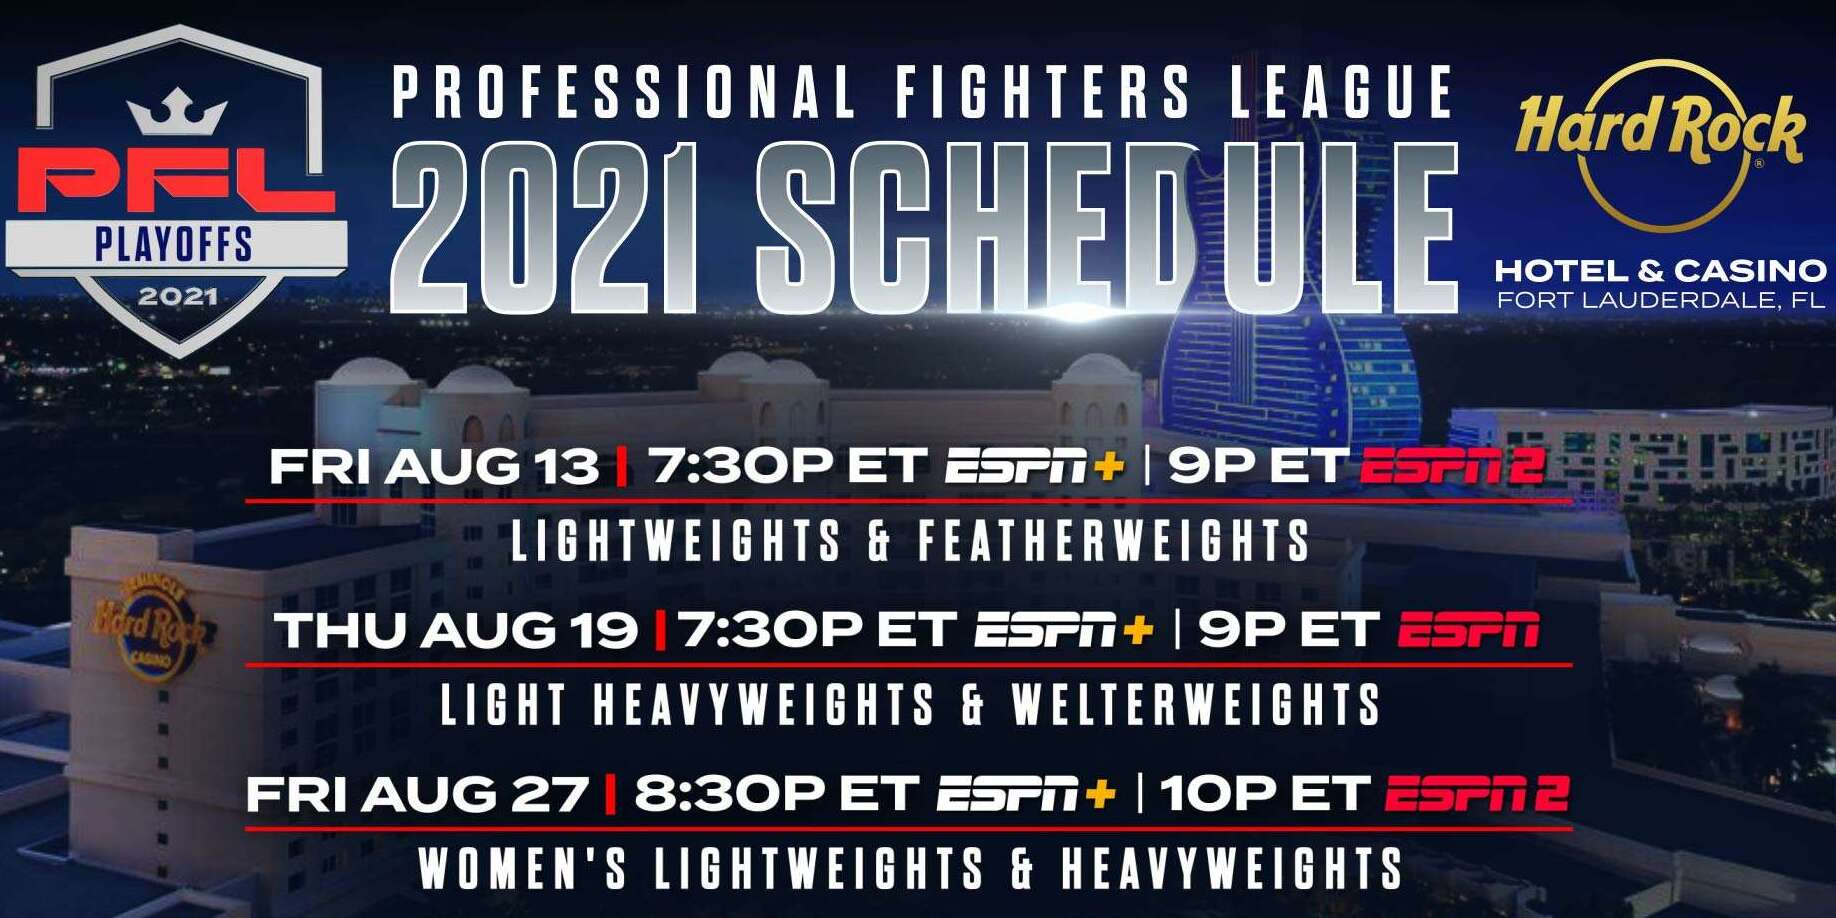 PROFESSIONAL FIGHTERS LEAGUE PLAYOFF RESIDENCY BEGINS FRIDAY, AUGUST 13, CONTINUES ON AUGUST 19 AND 27, LIVE ON ESPN NETWORKS AND STREAMING PLATFORMS